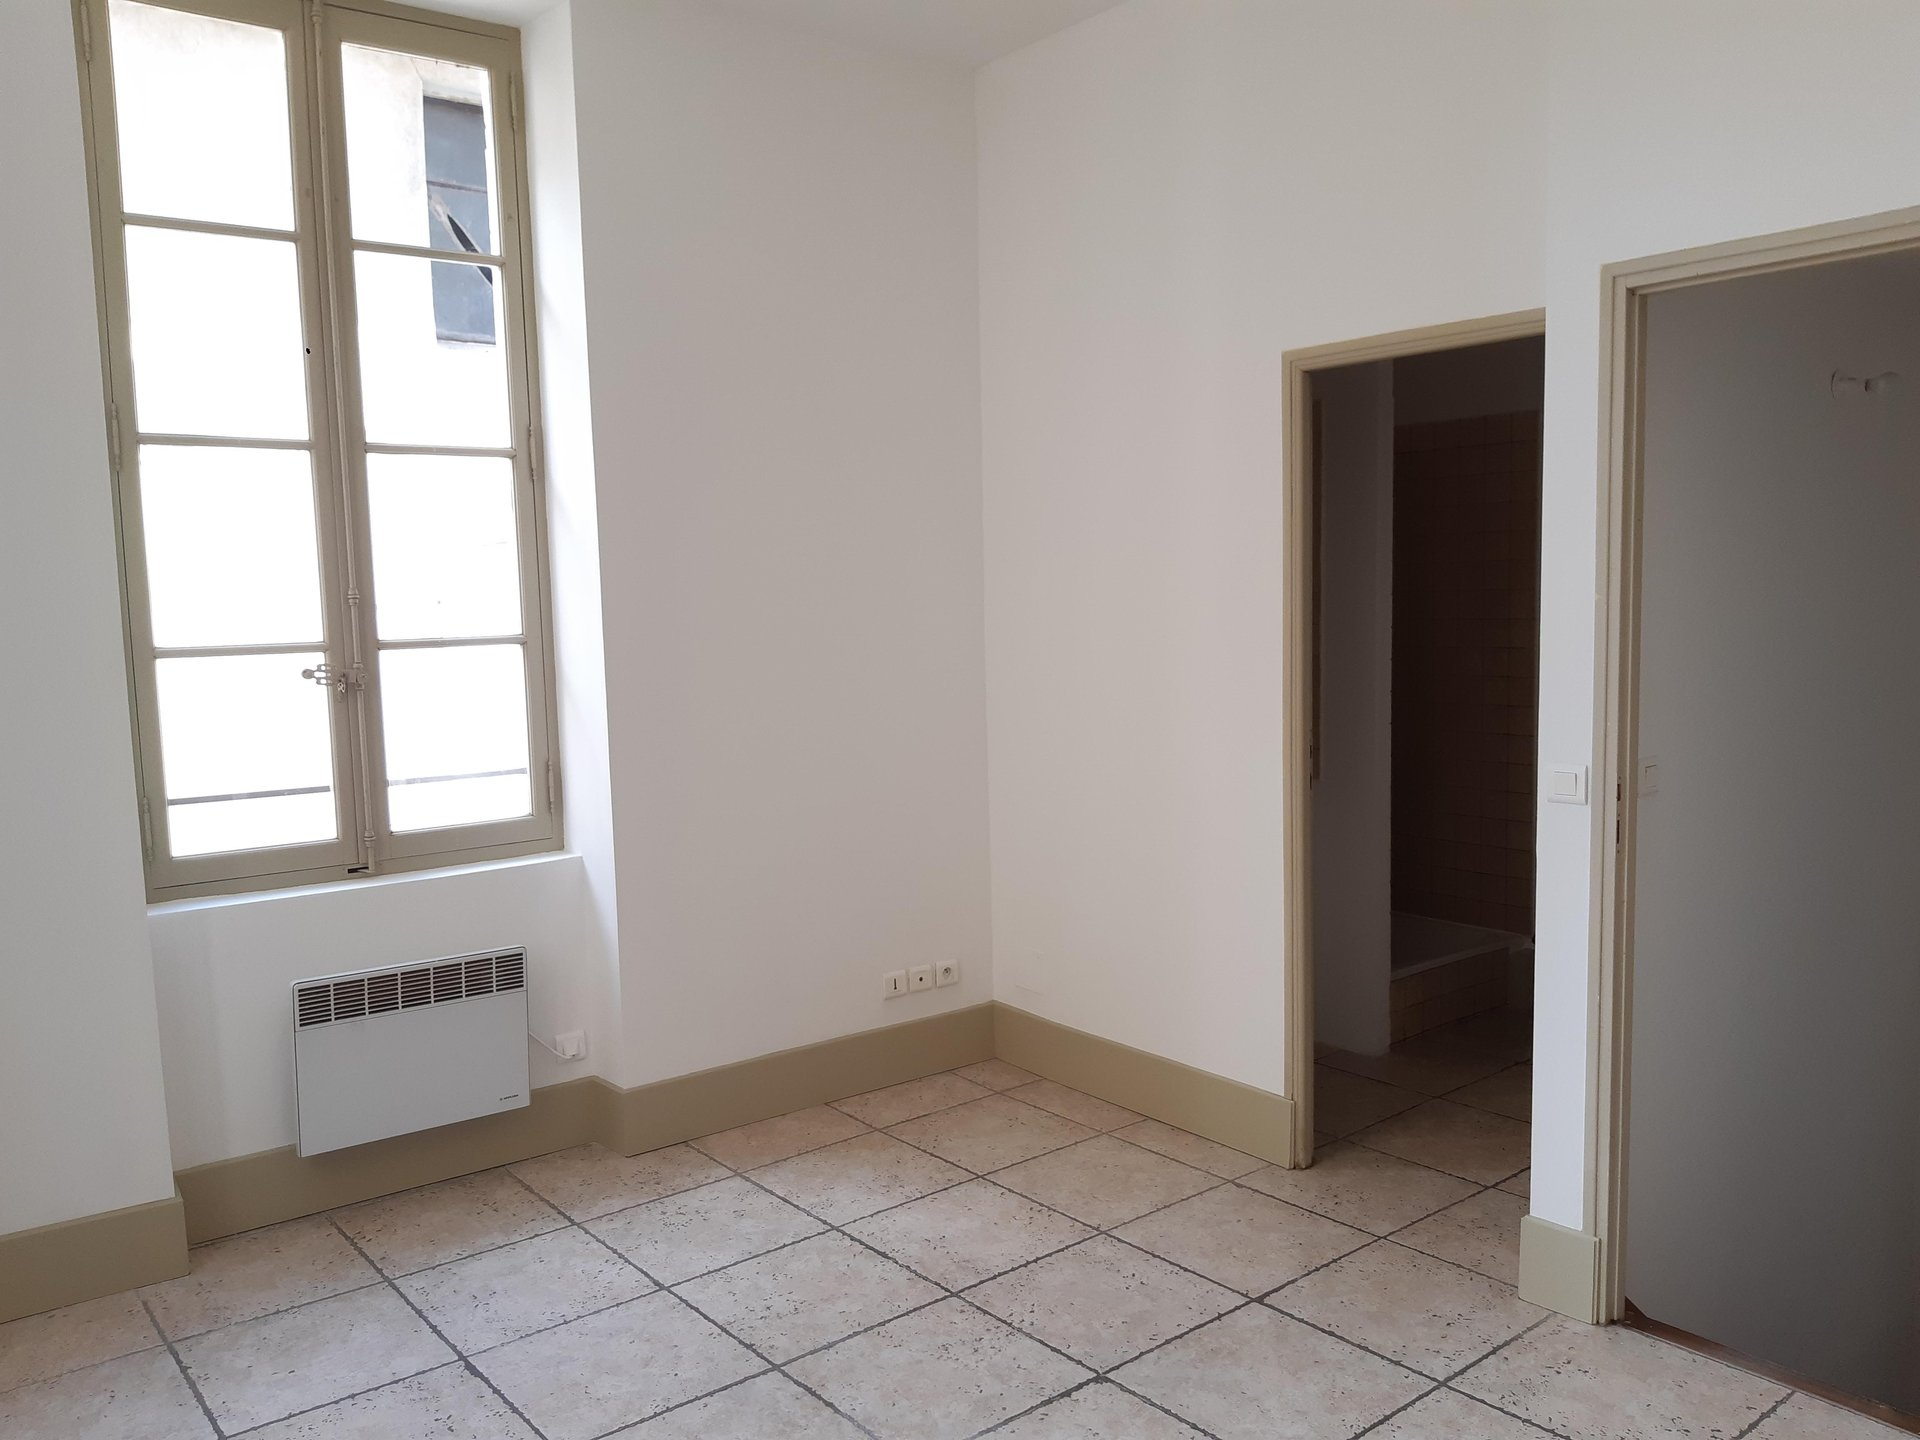 Location Appartement BEAUCAIRE surface habitable de 31 m²